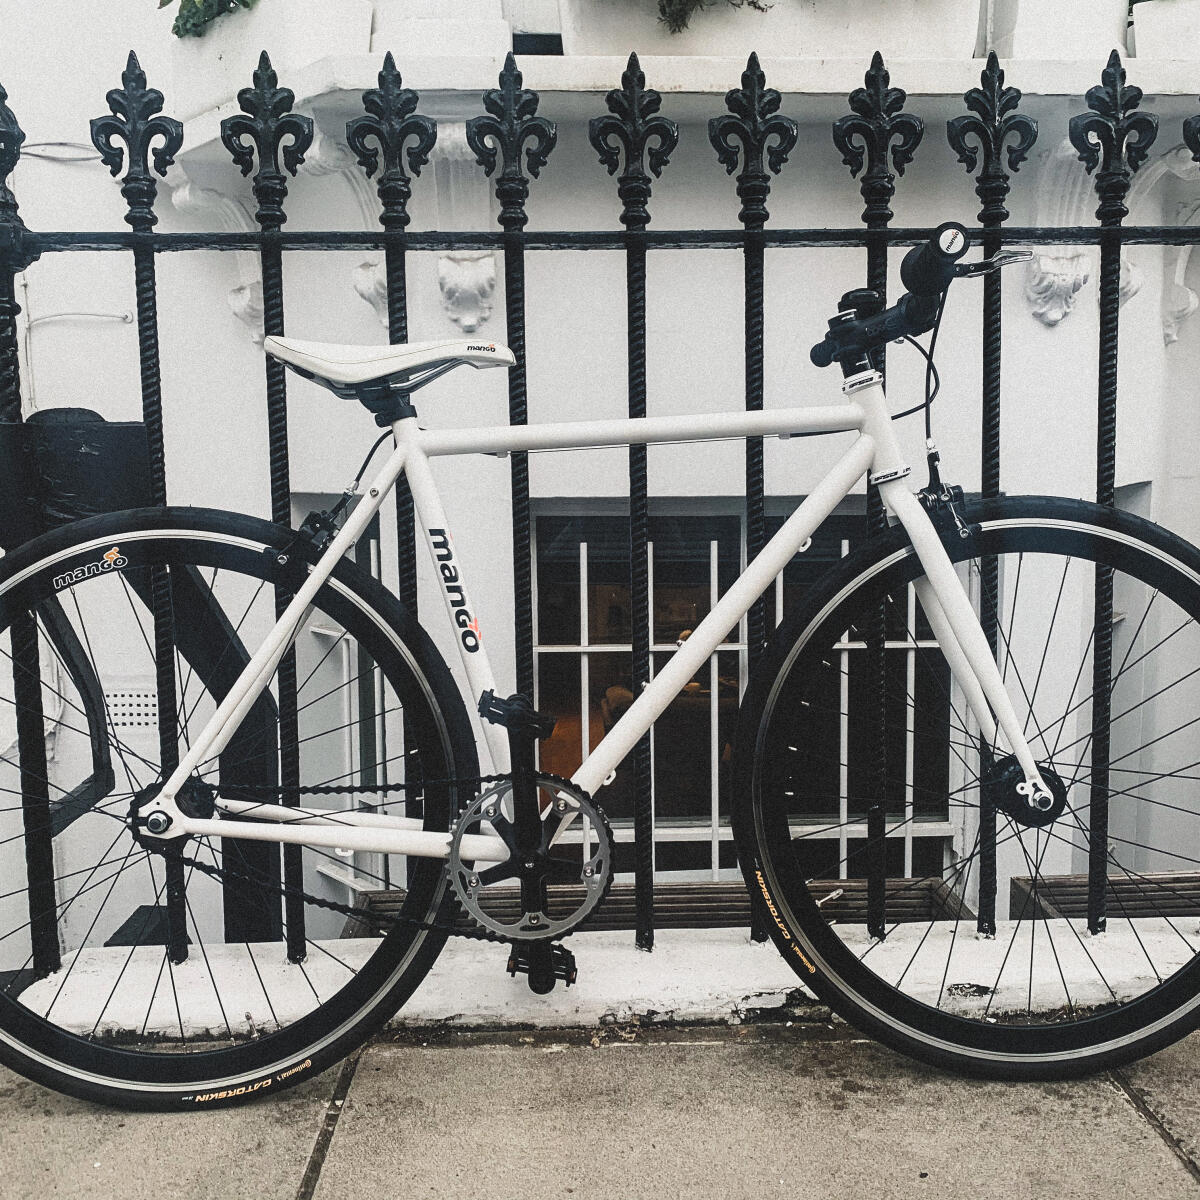 Mango Bikes 5 star review on 6th July 2020